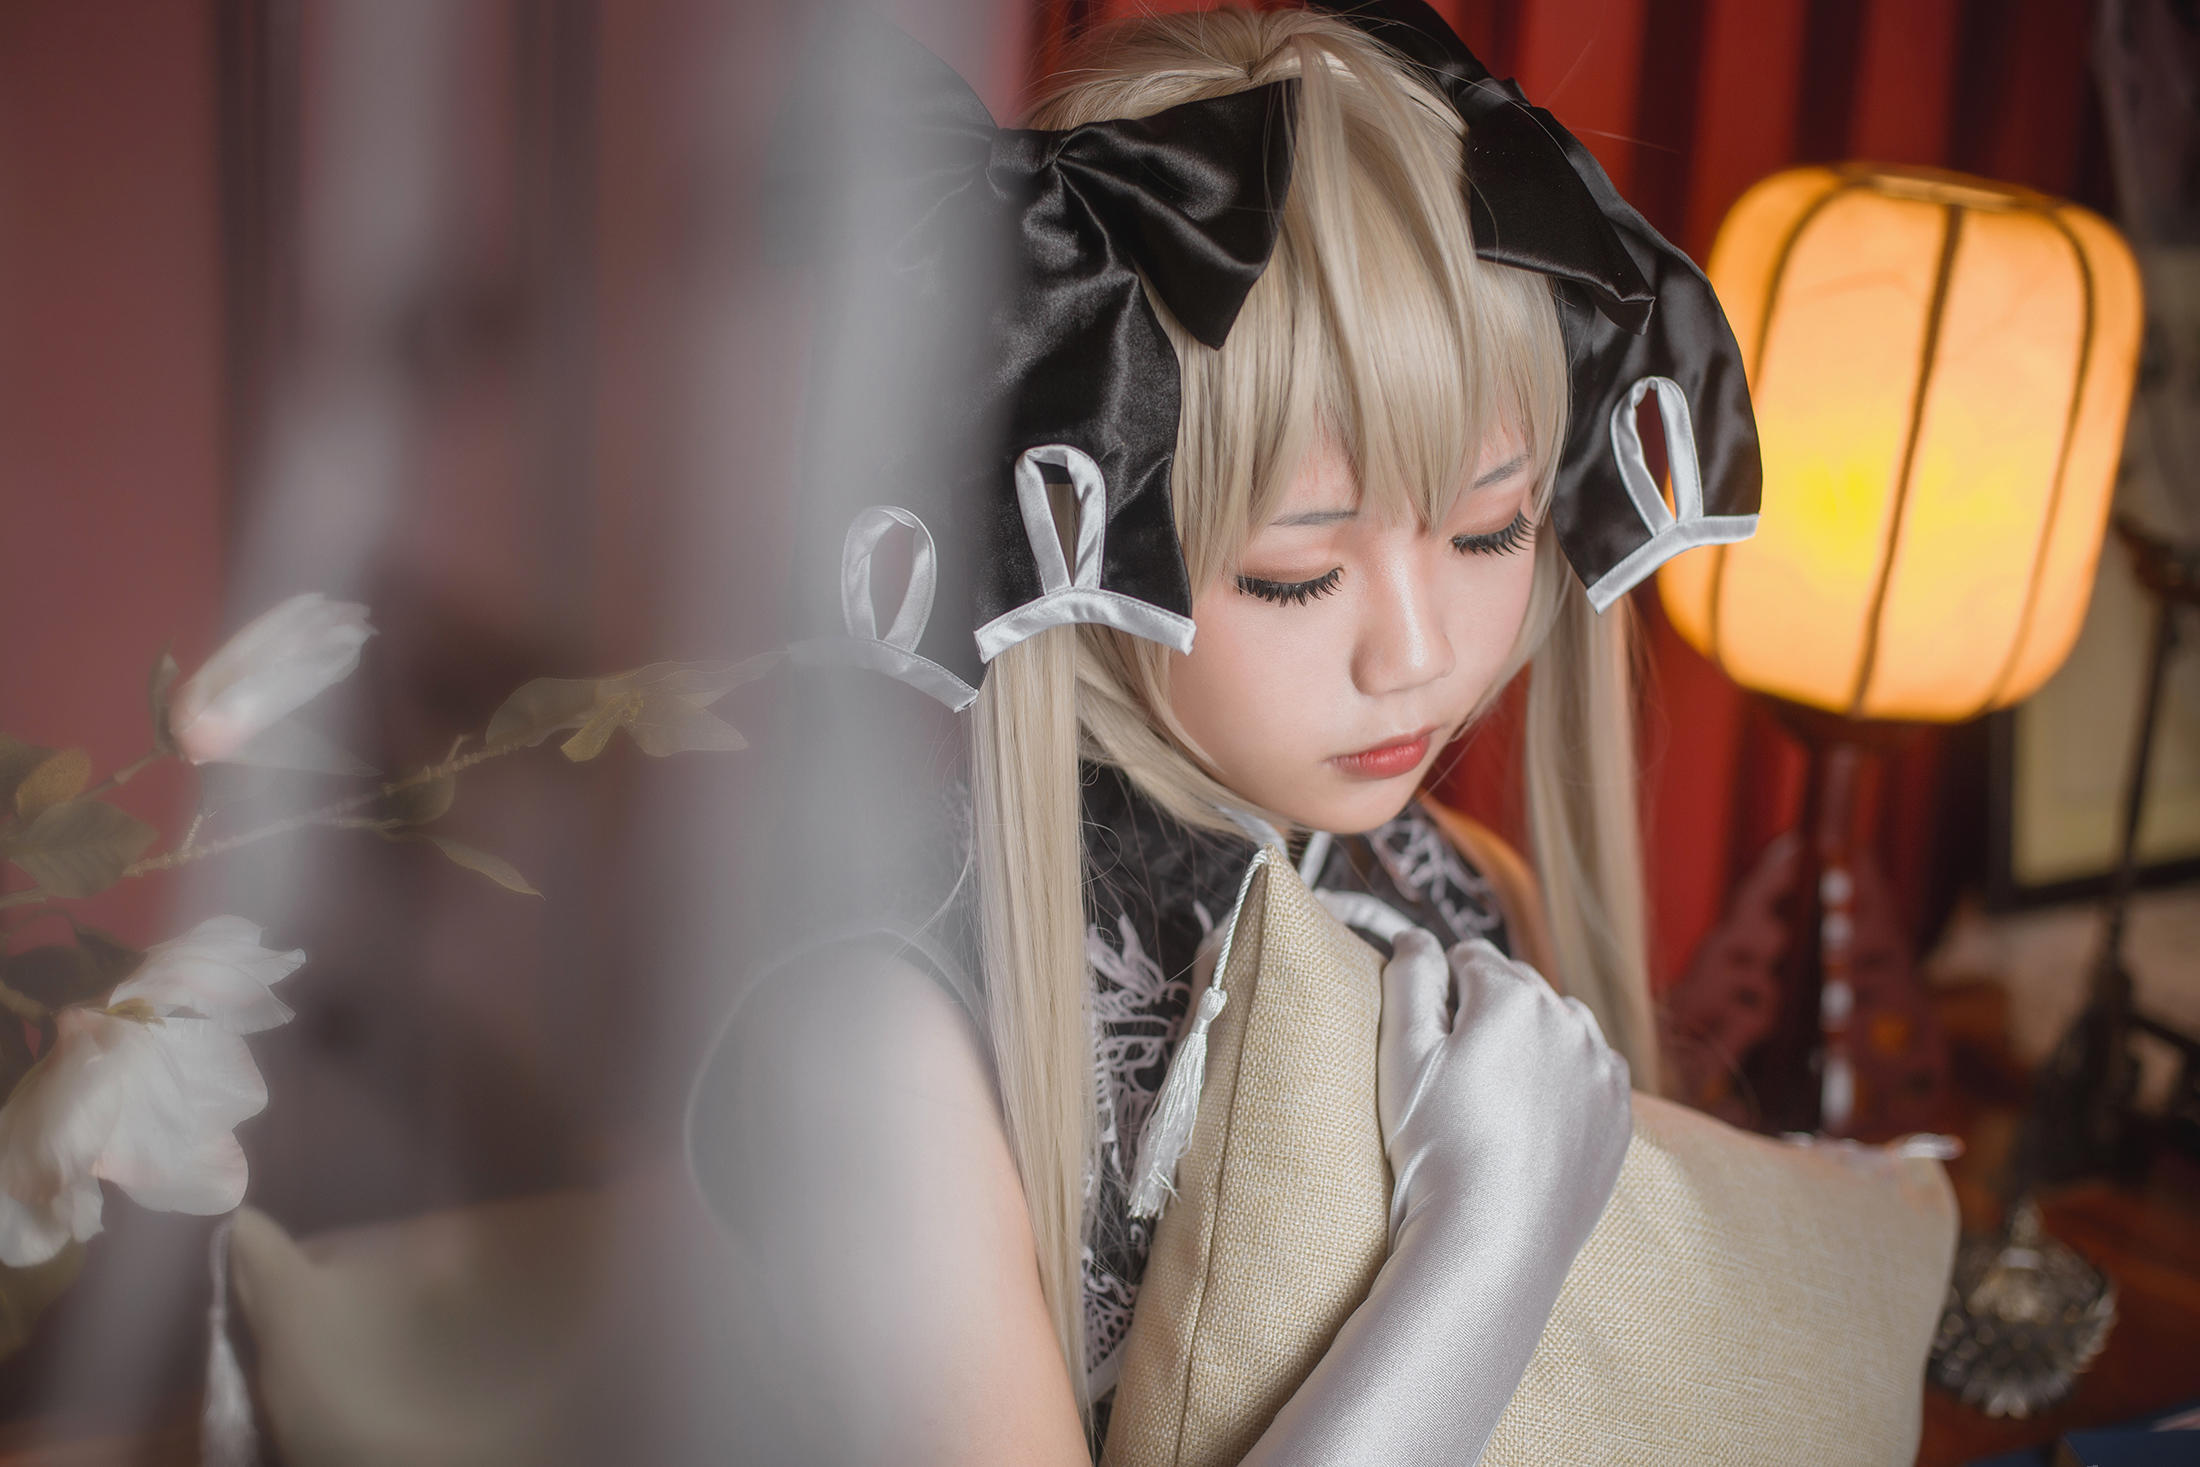 【Cosplay】缘之空 缘之空